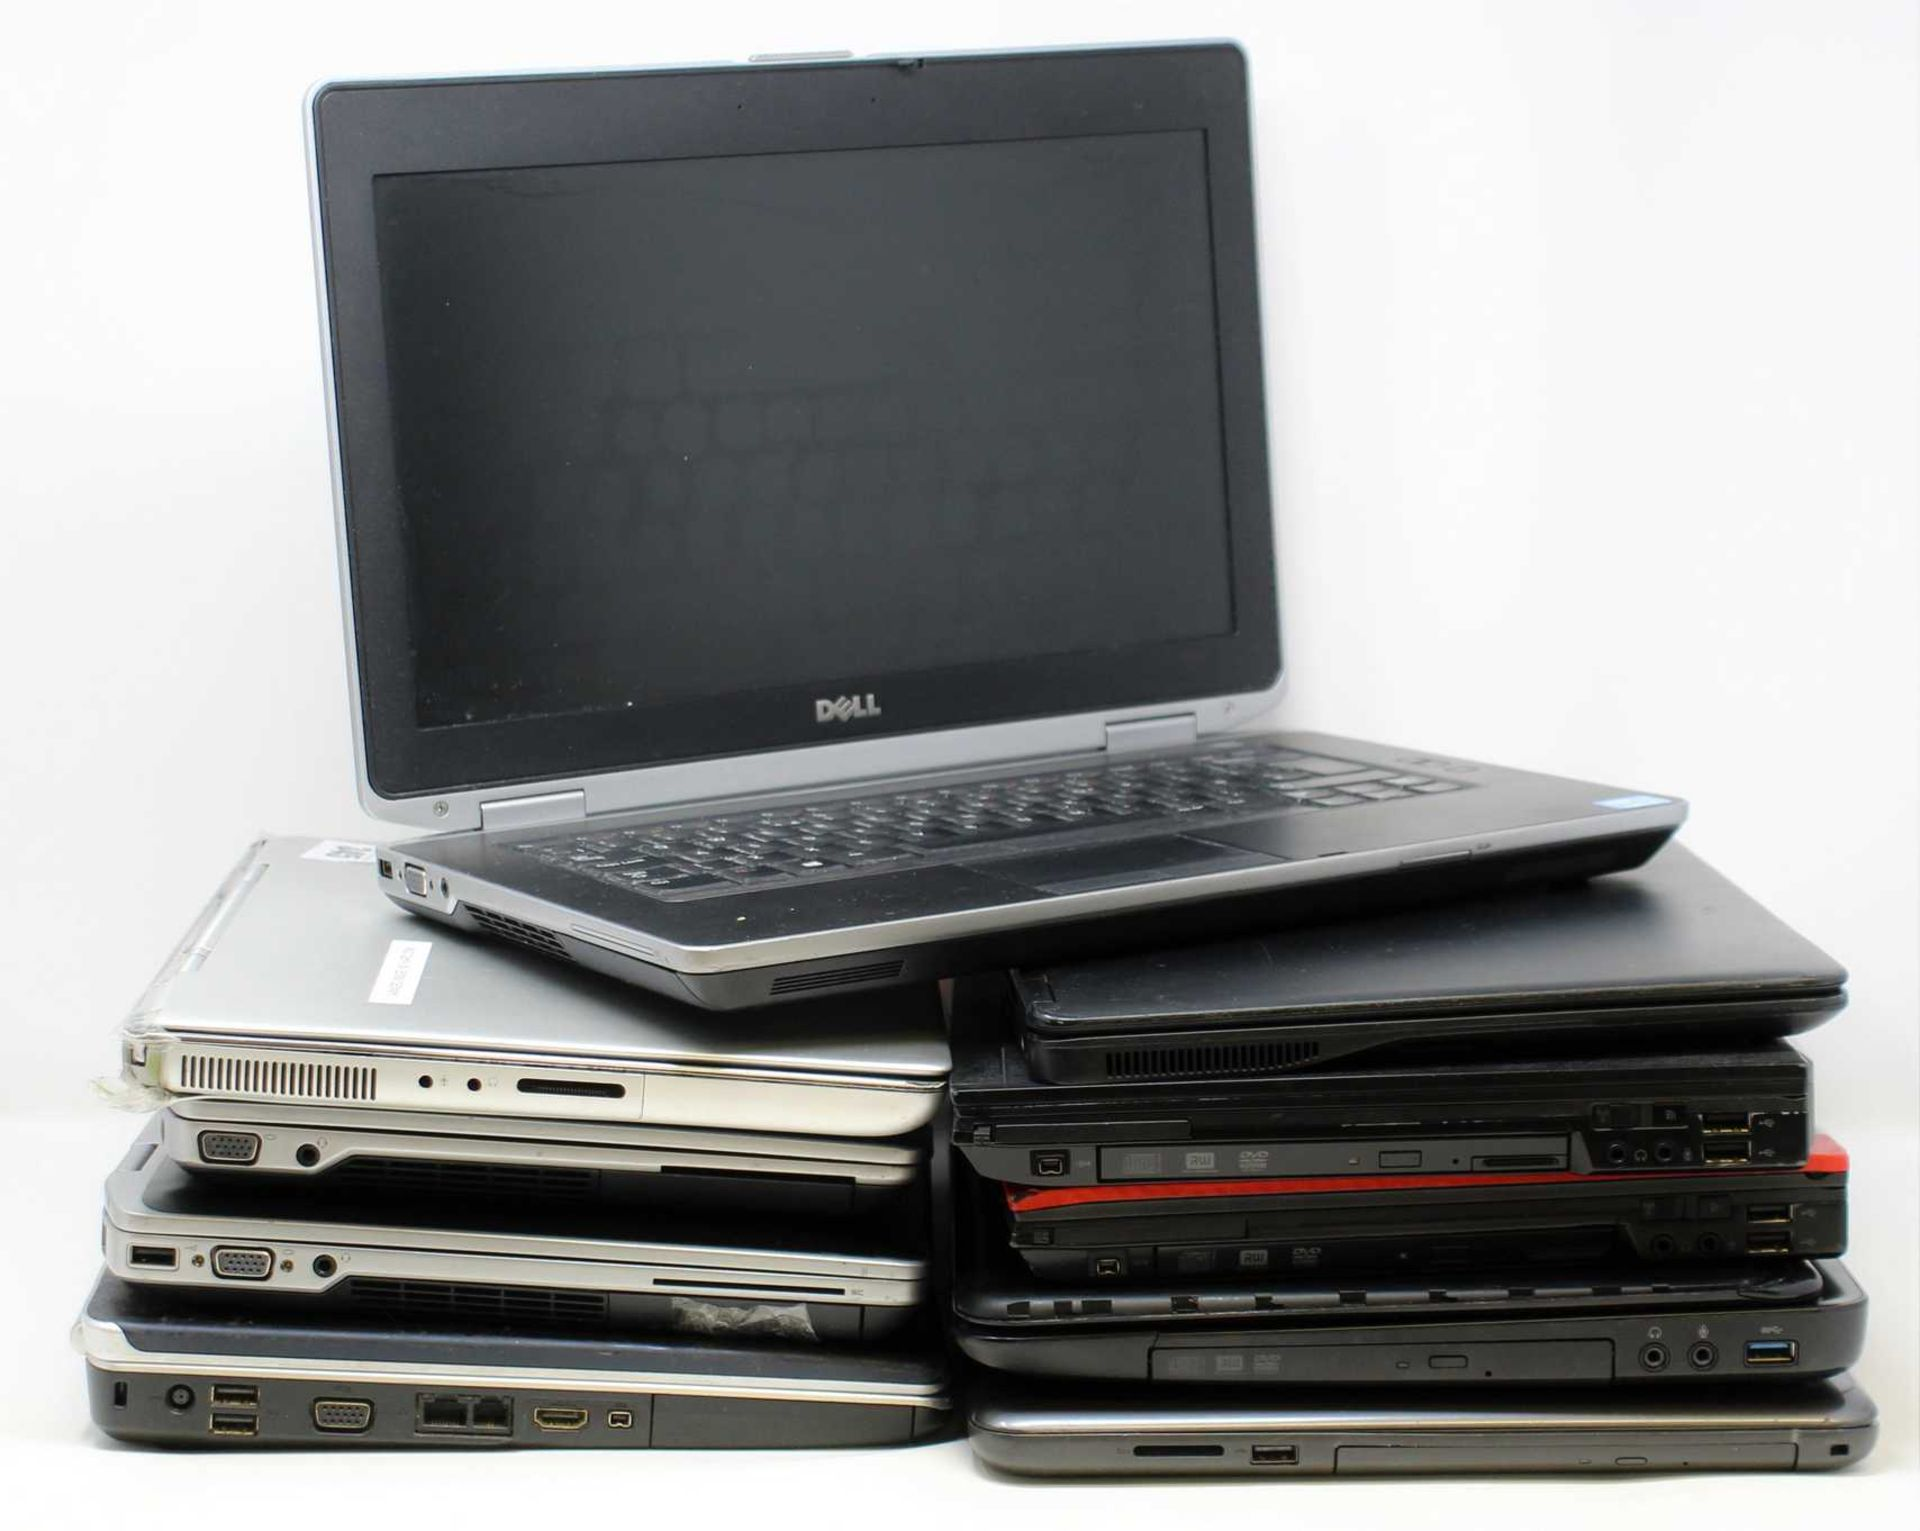 SOLD FOR PARTS, COLLECTION ONLY: Ten pre-owned Dell Laptops sold for parts; 3 x Latitude E6420 (1